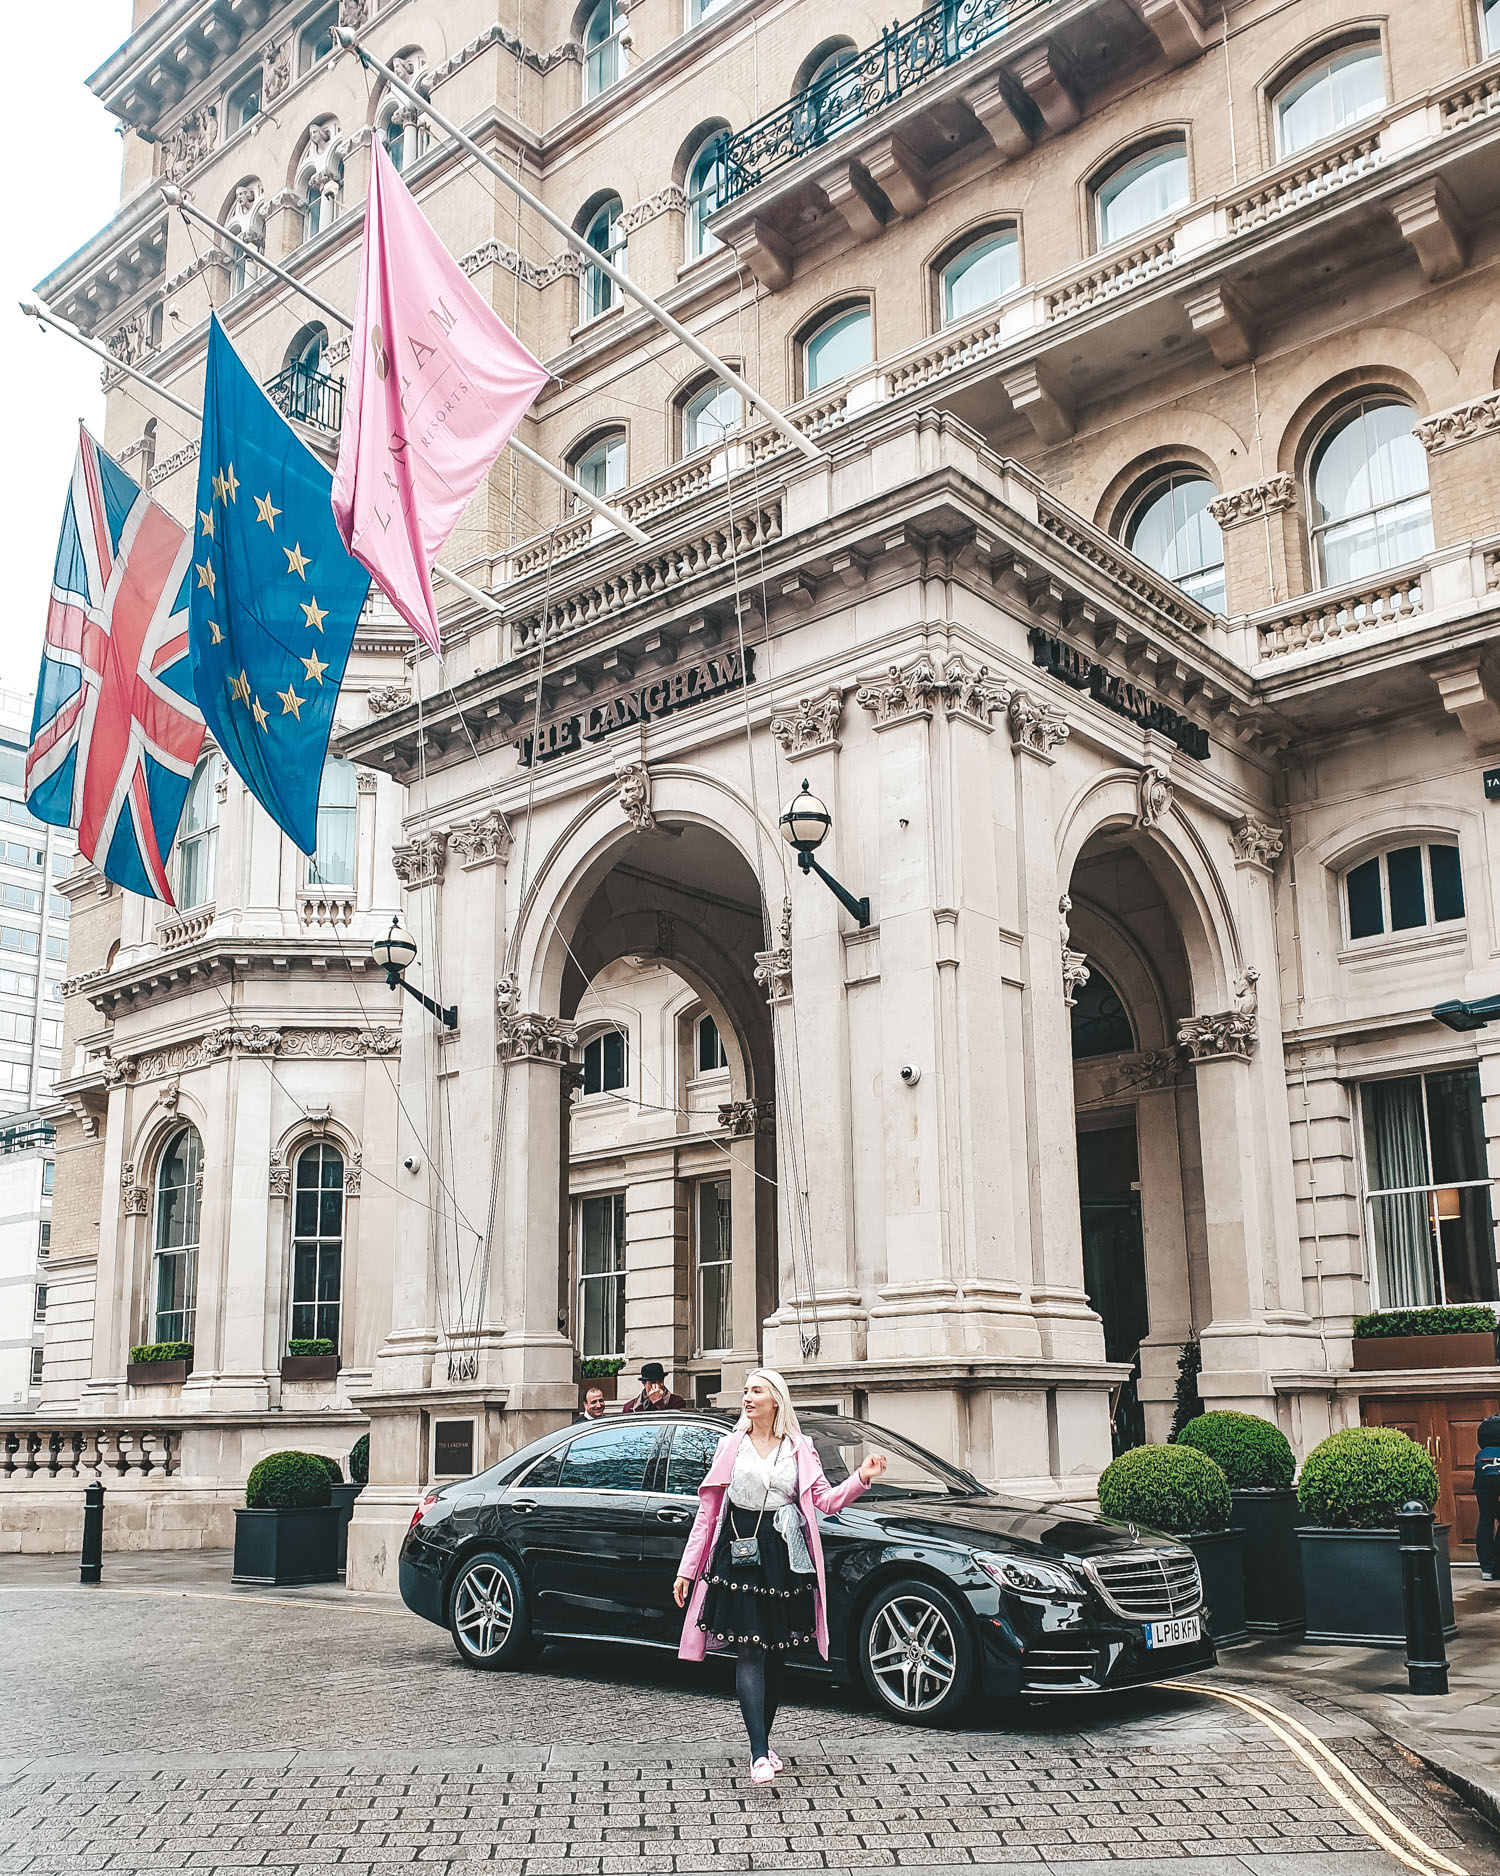 The Langham London entrance